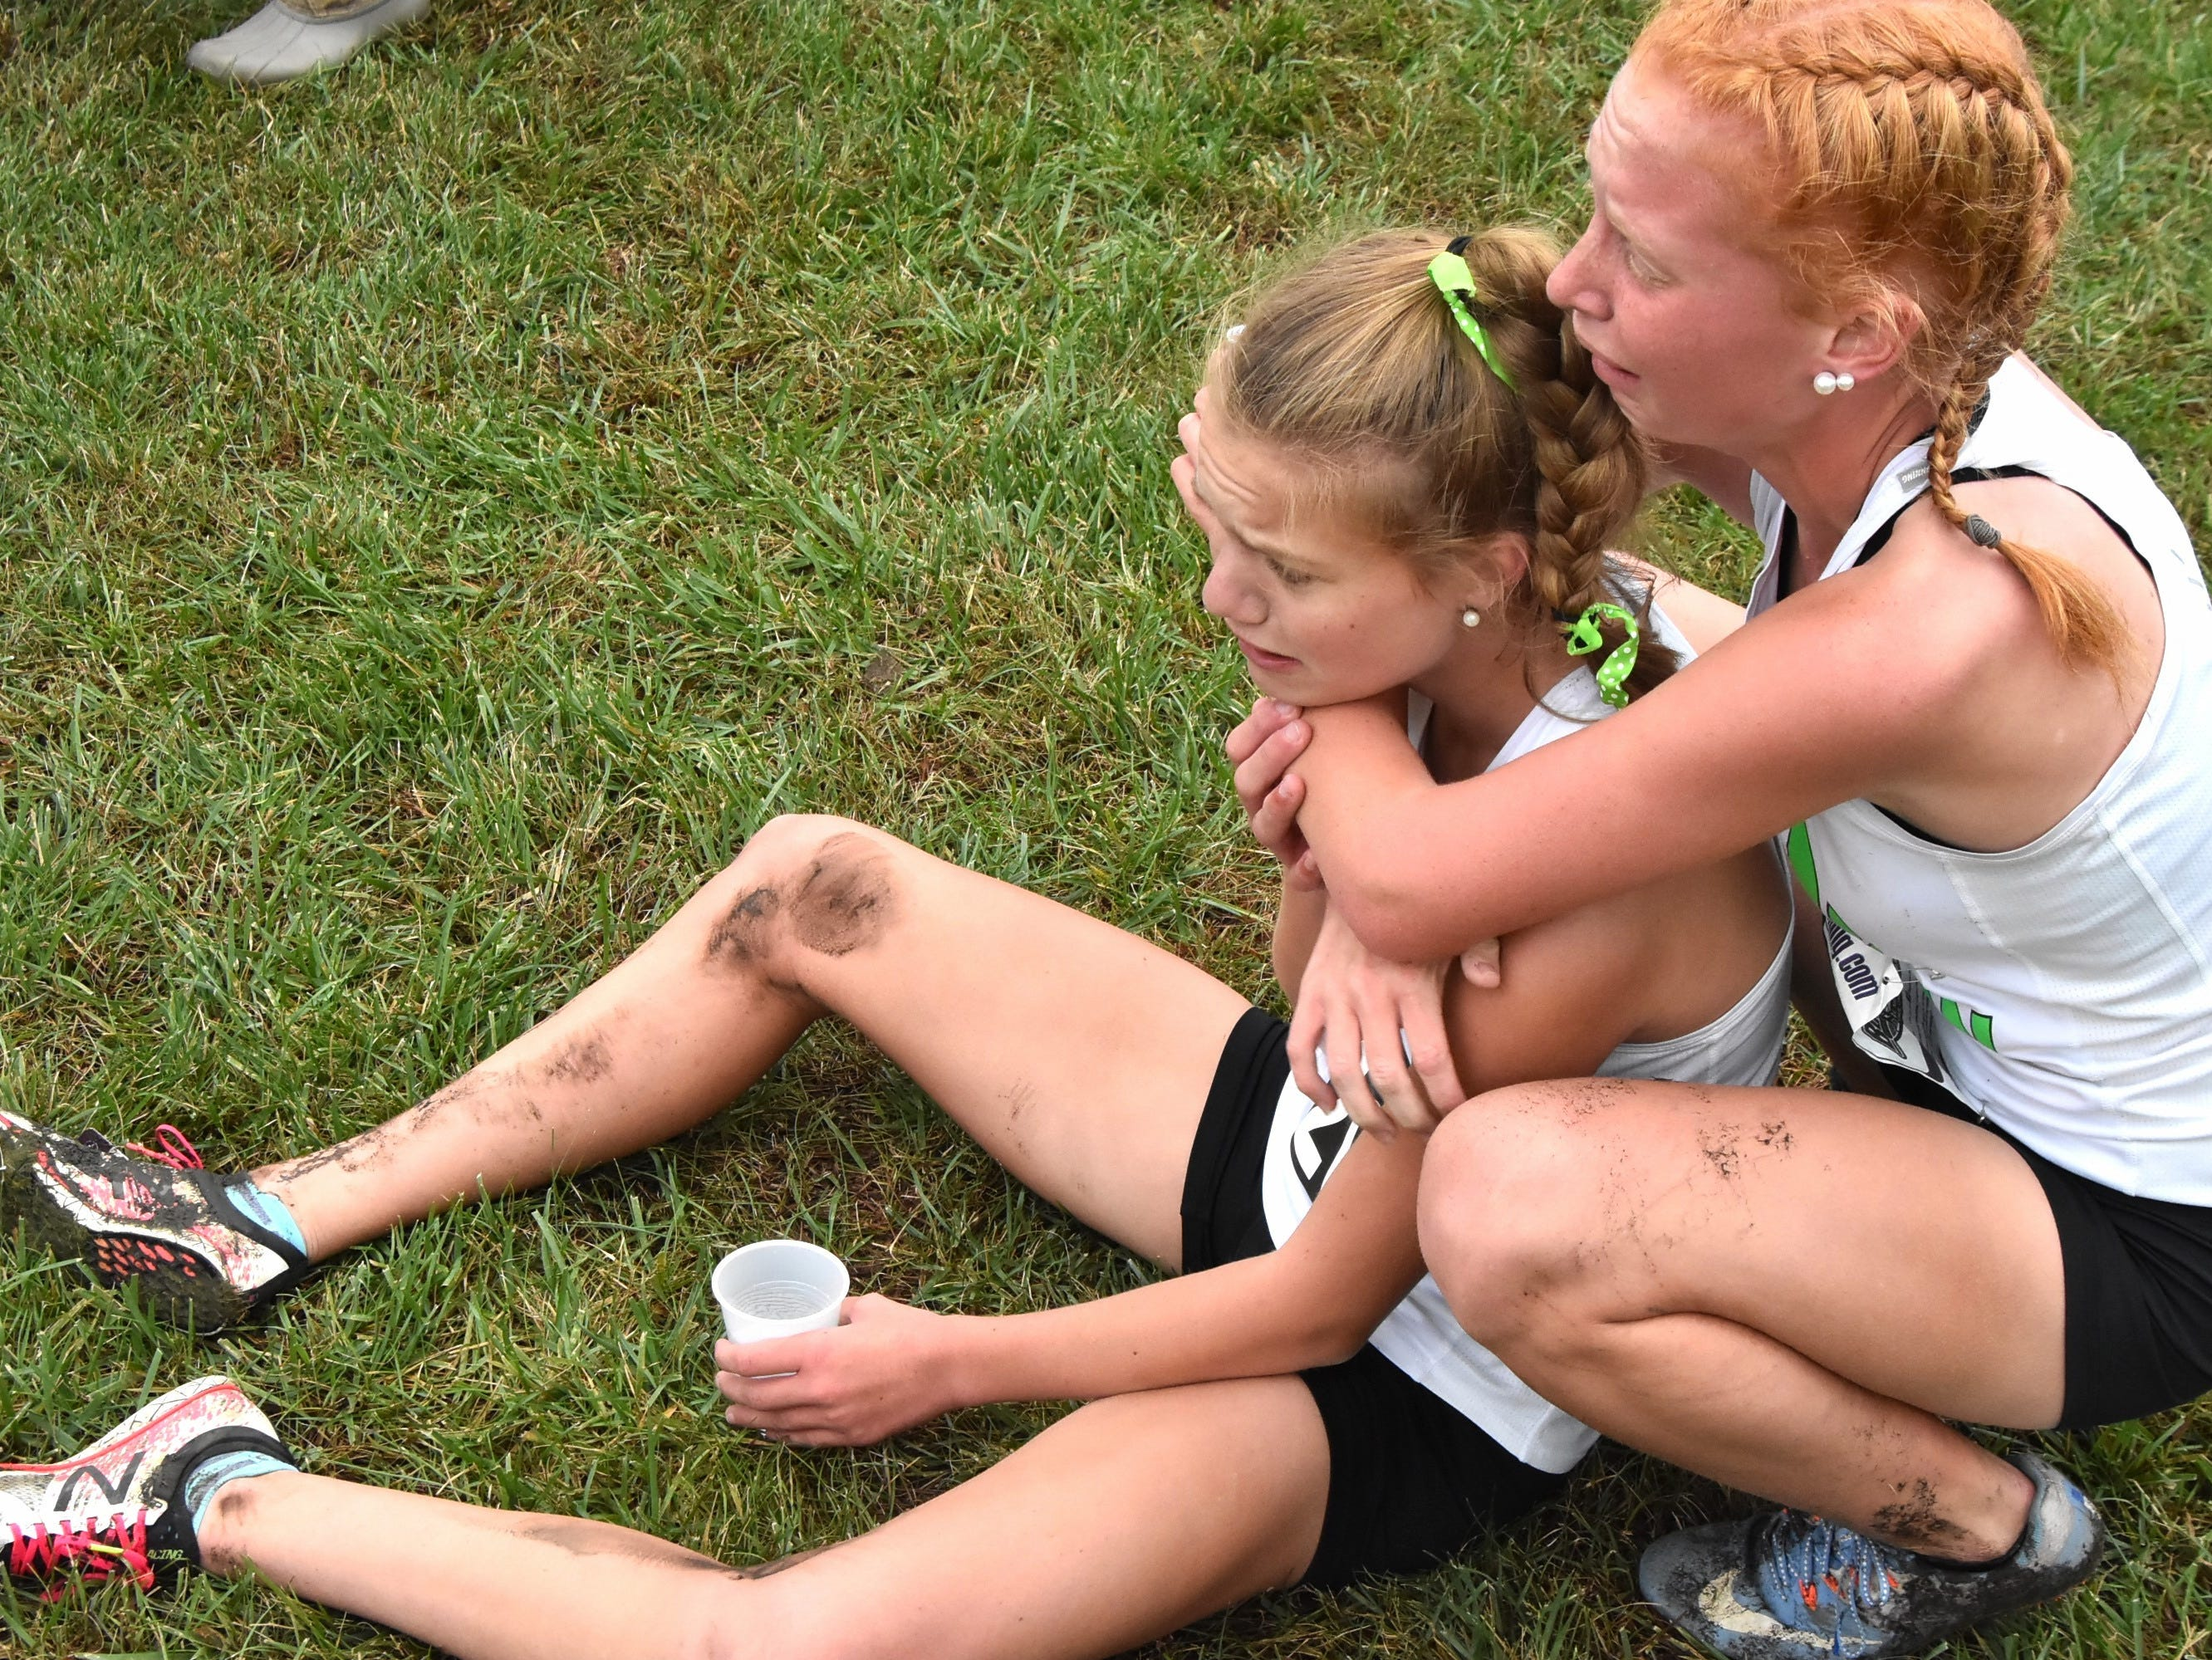 Seton runners share their exhaustion after completing the race at the 2018 GCL/GGCL Cross Country Championships, October 13, 2018.